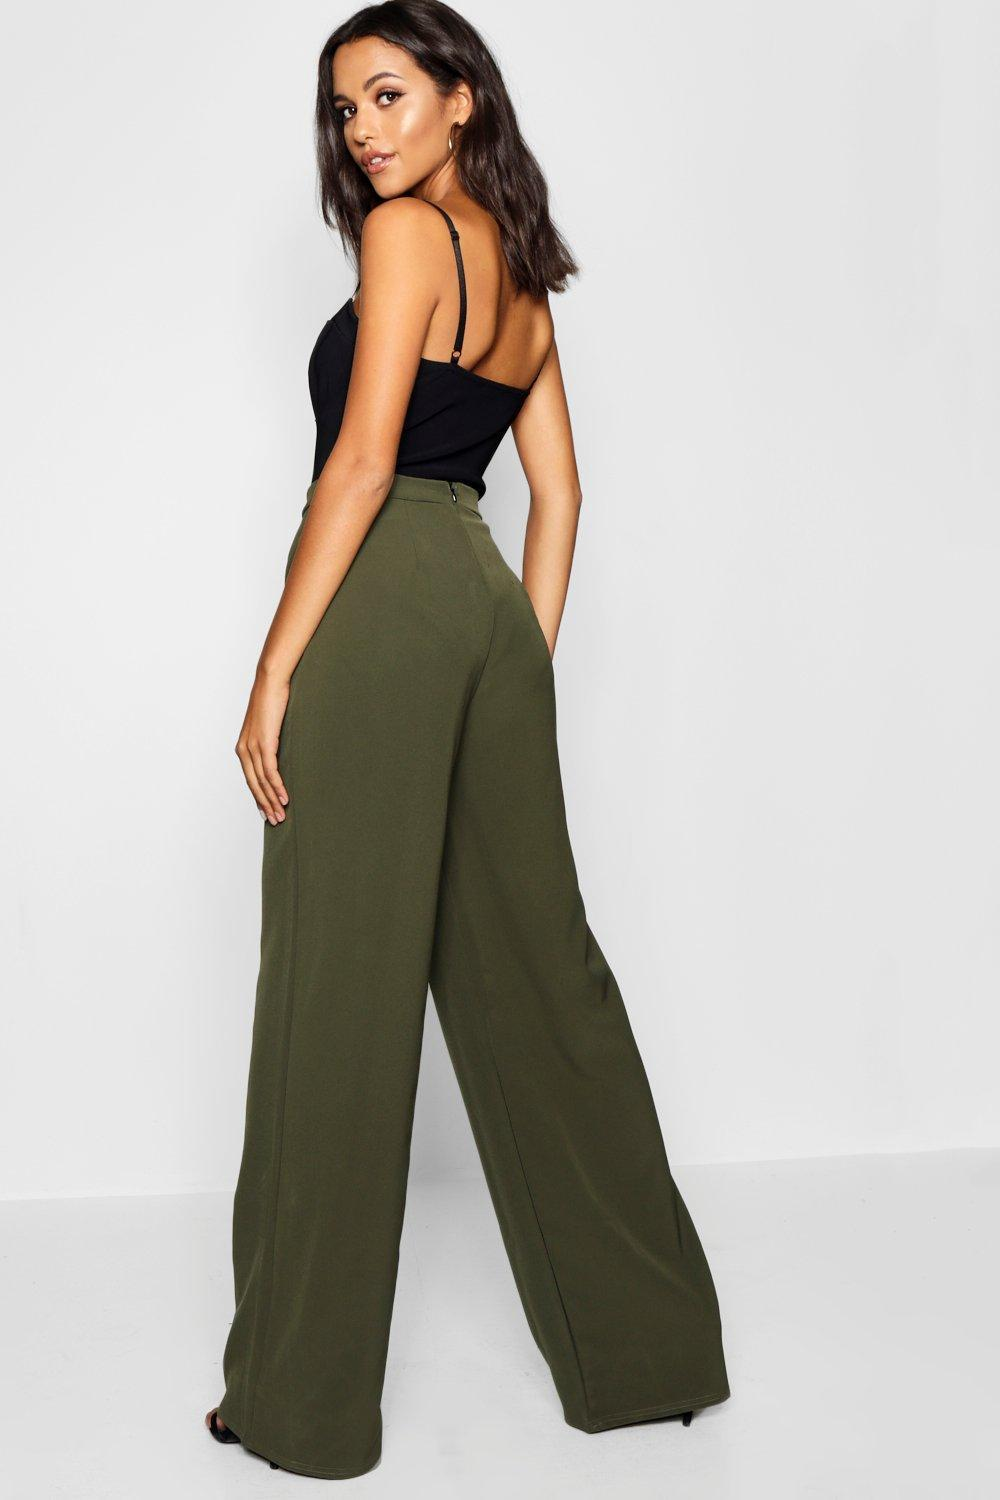 5aa9247158903 Boohoo - Multicolor Tall High Waisted Woven Wide Leg Pants - Lyst. View  fullscreen